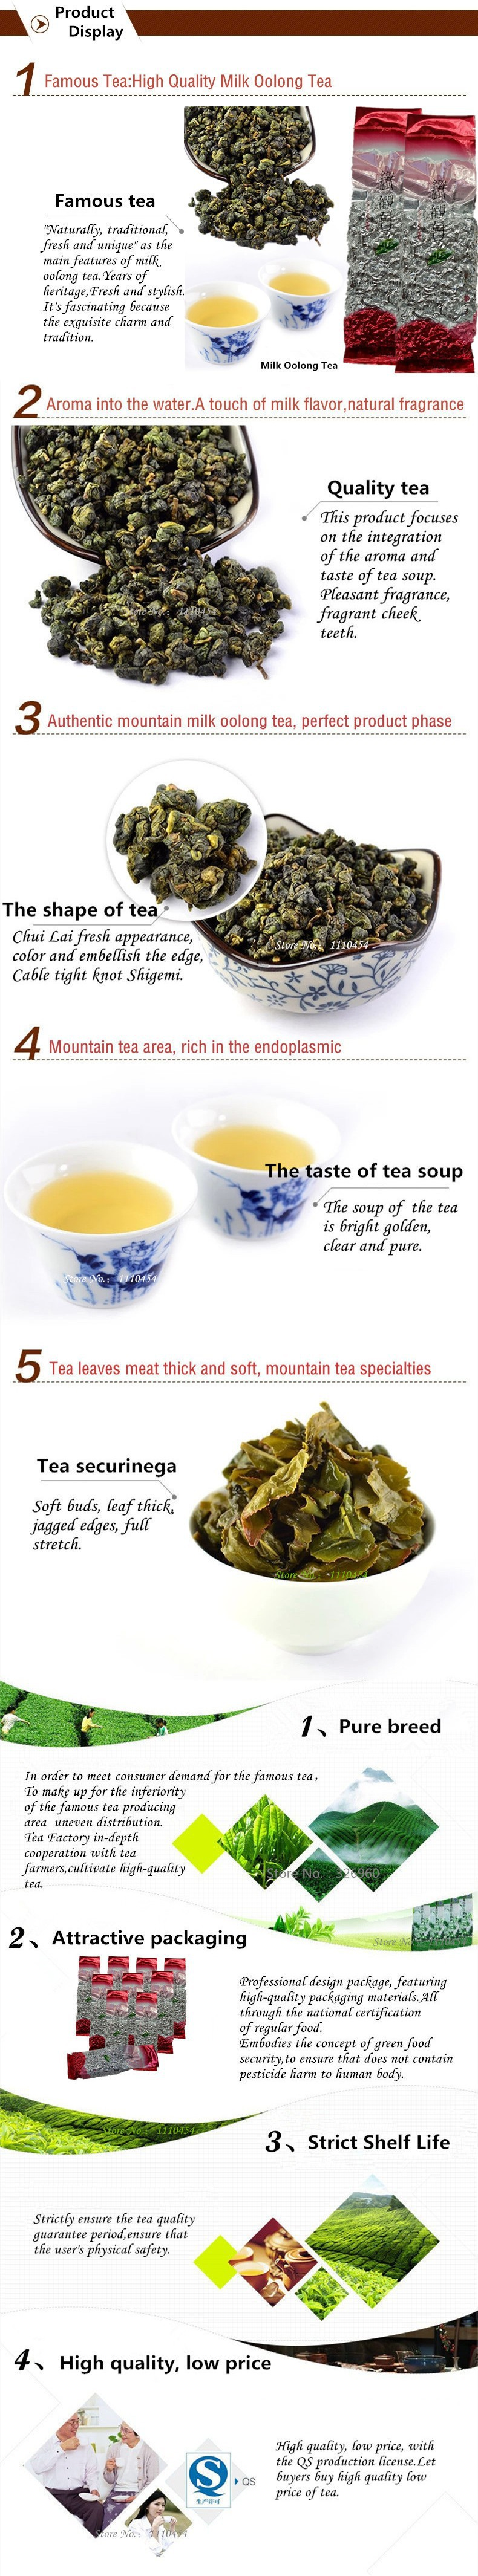 Promotion Milk Oolong Tea 125g High Quality Tiguanyin Green Tea Taiwan Jin xuan Milk Oolong Health Care Milk Tea